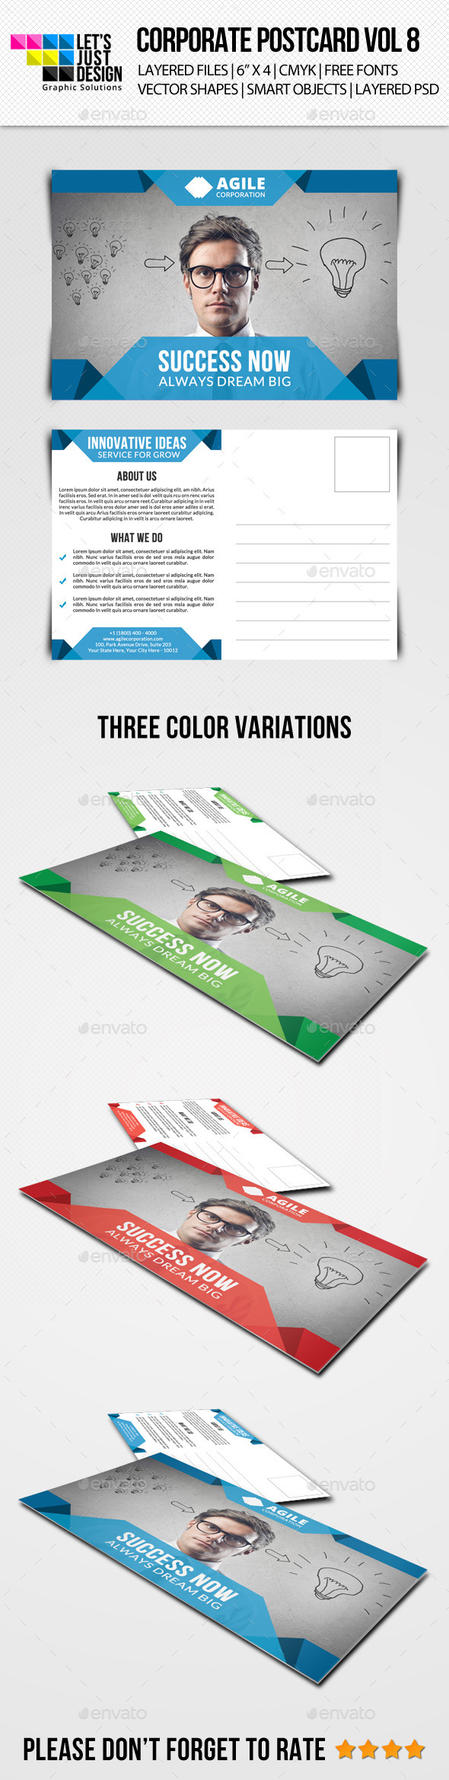 Corporate Postcard Template Vol 8 by jasonmendes